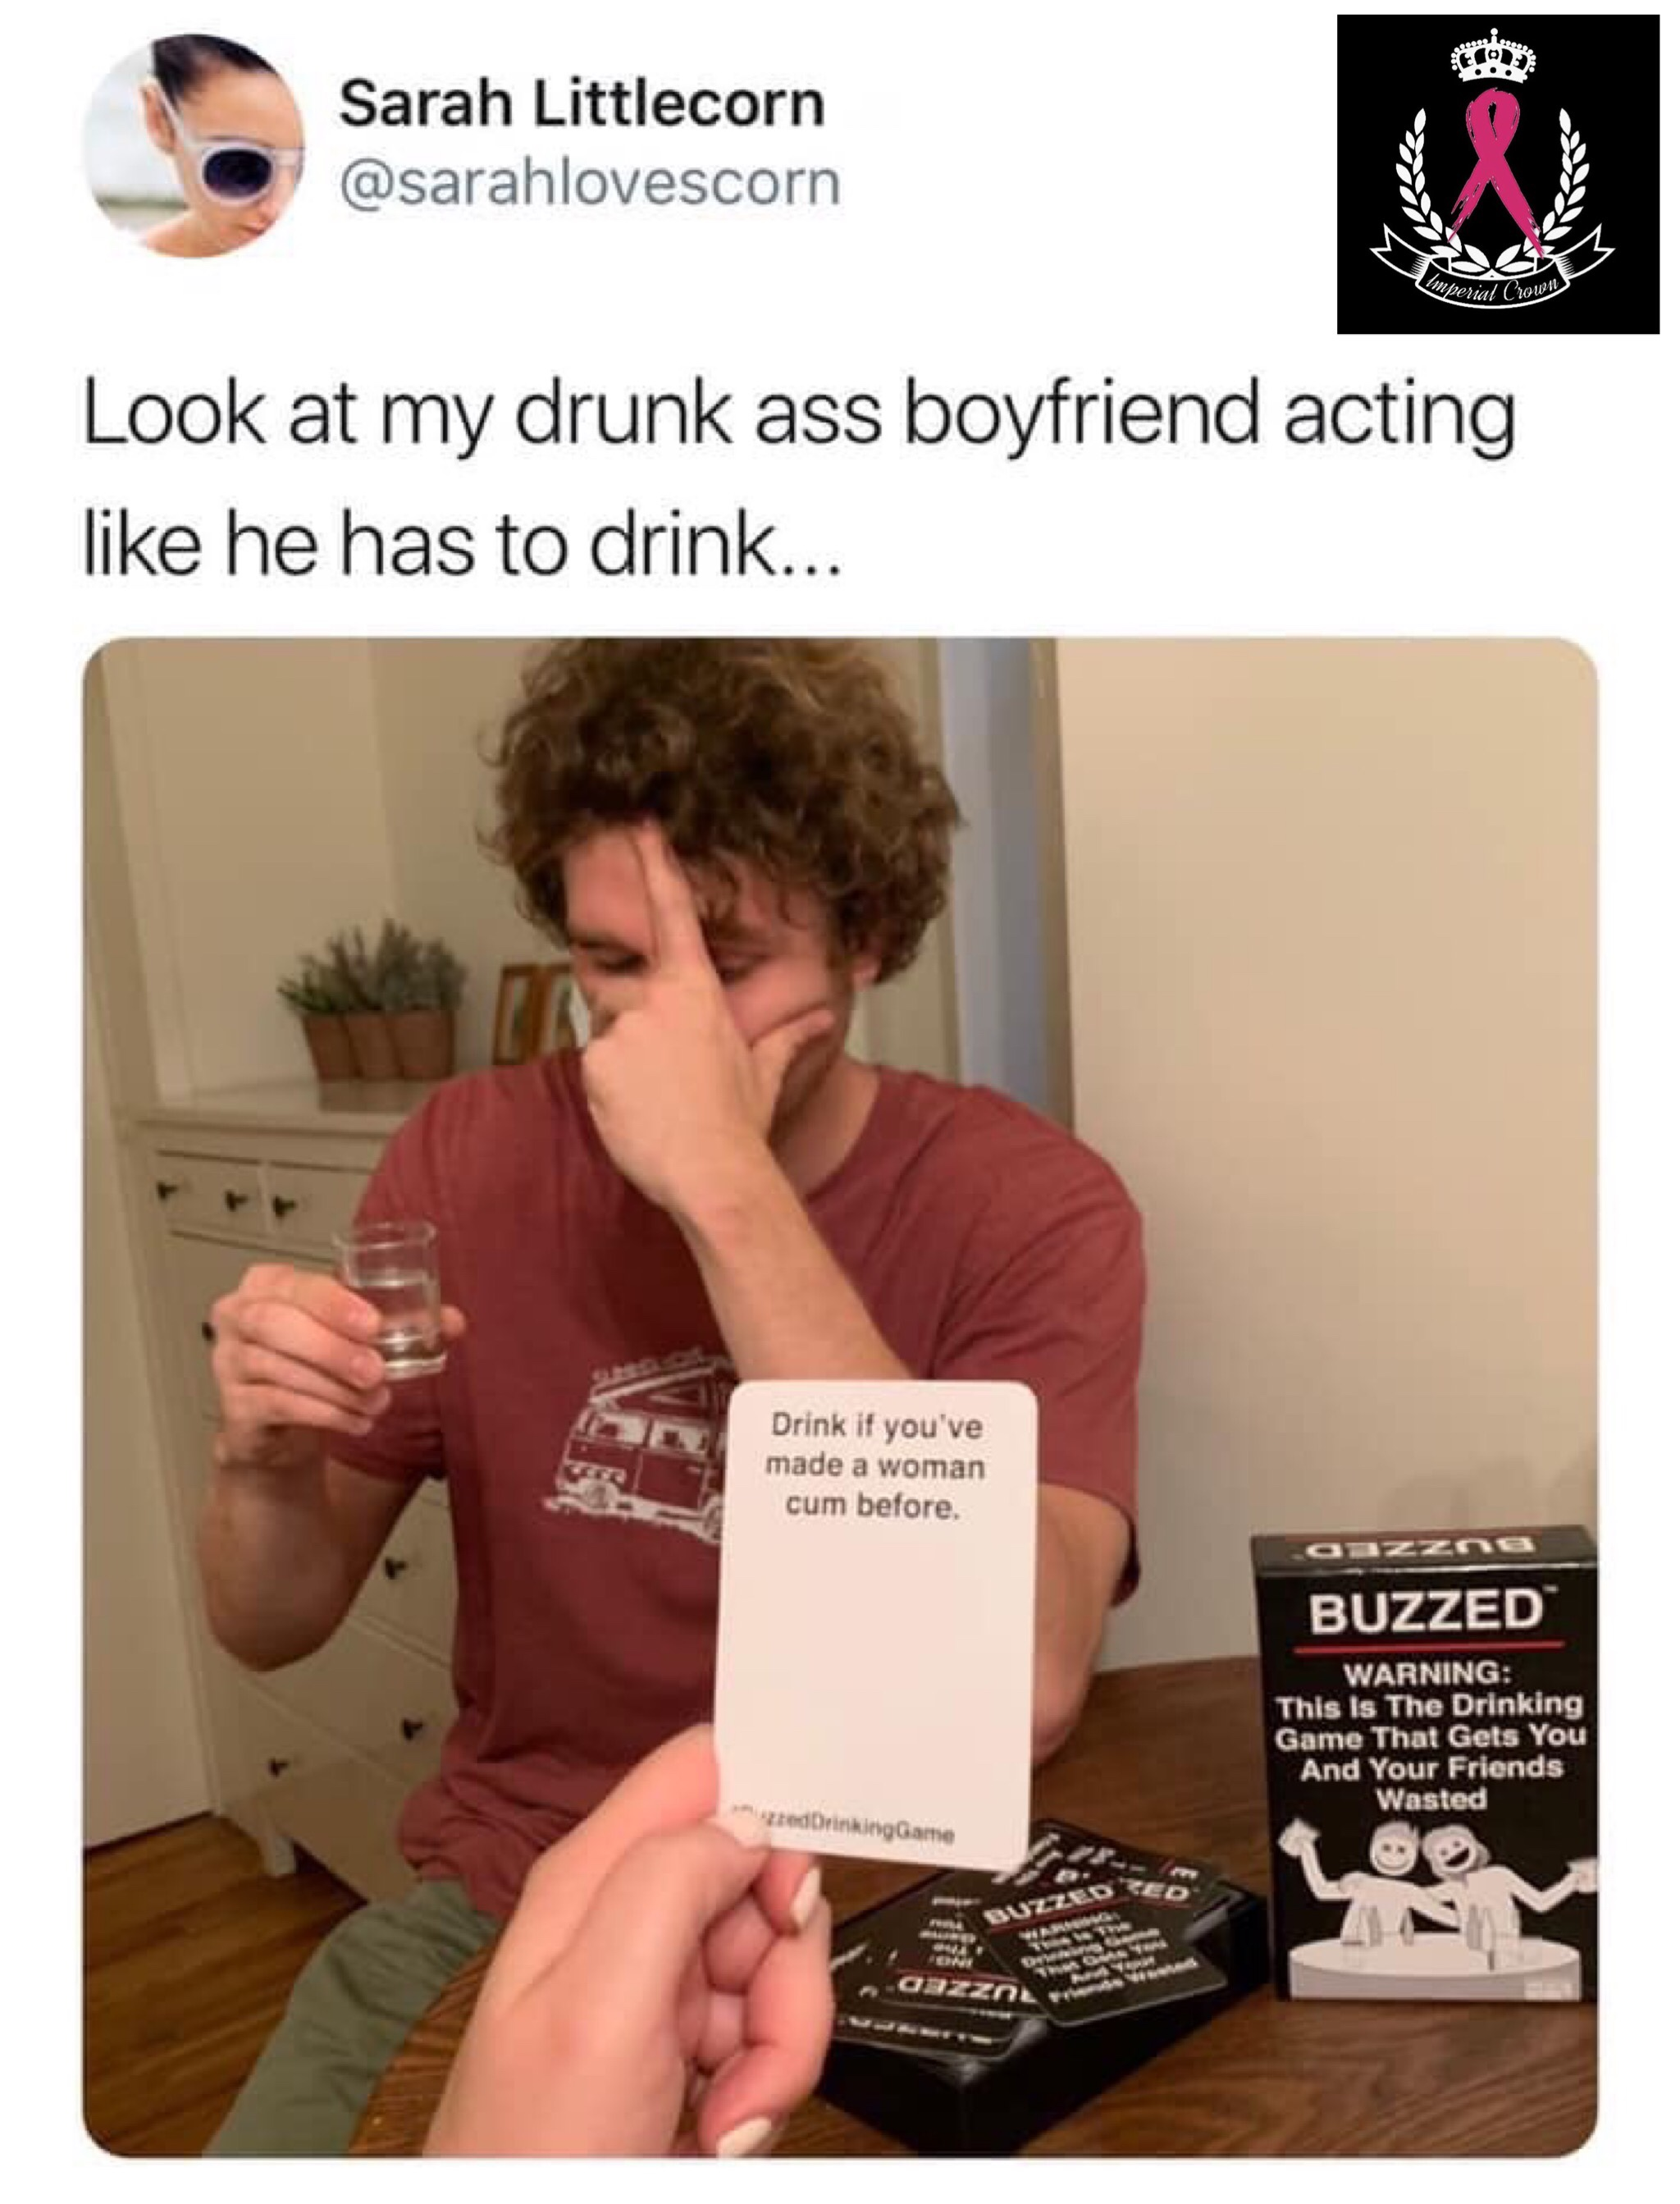 Look at my drunk ass boyfriend acting